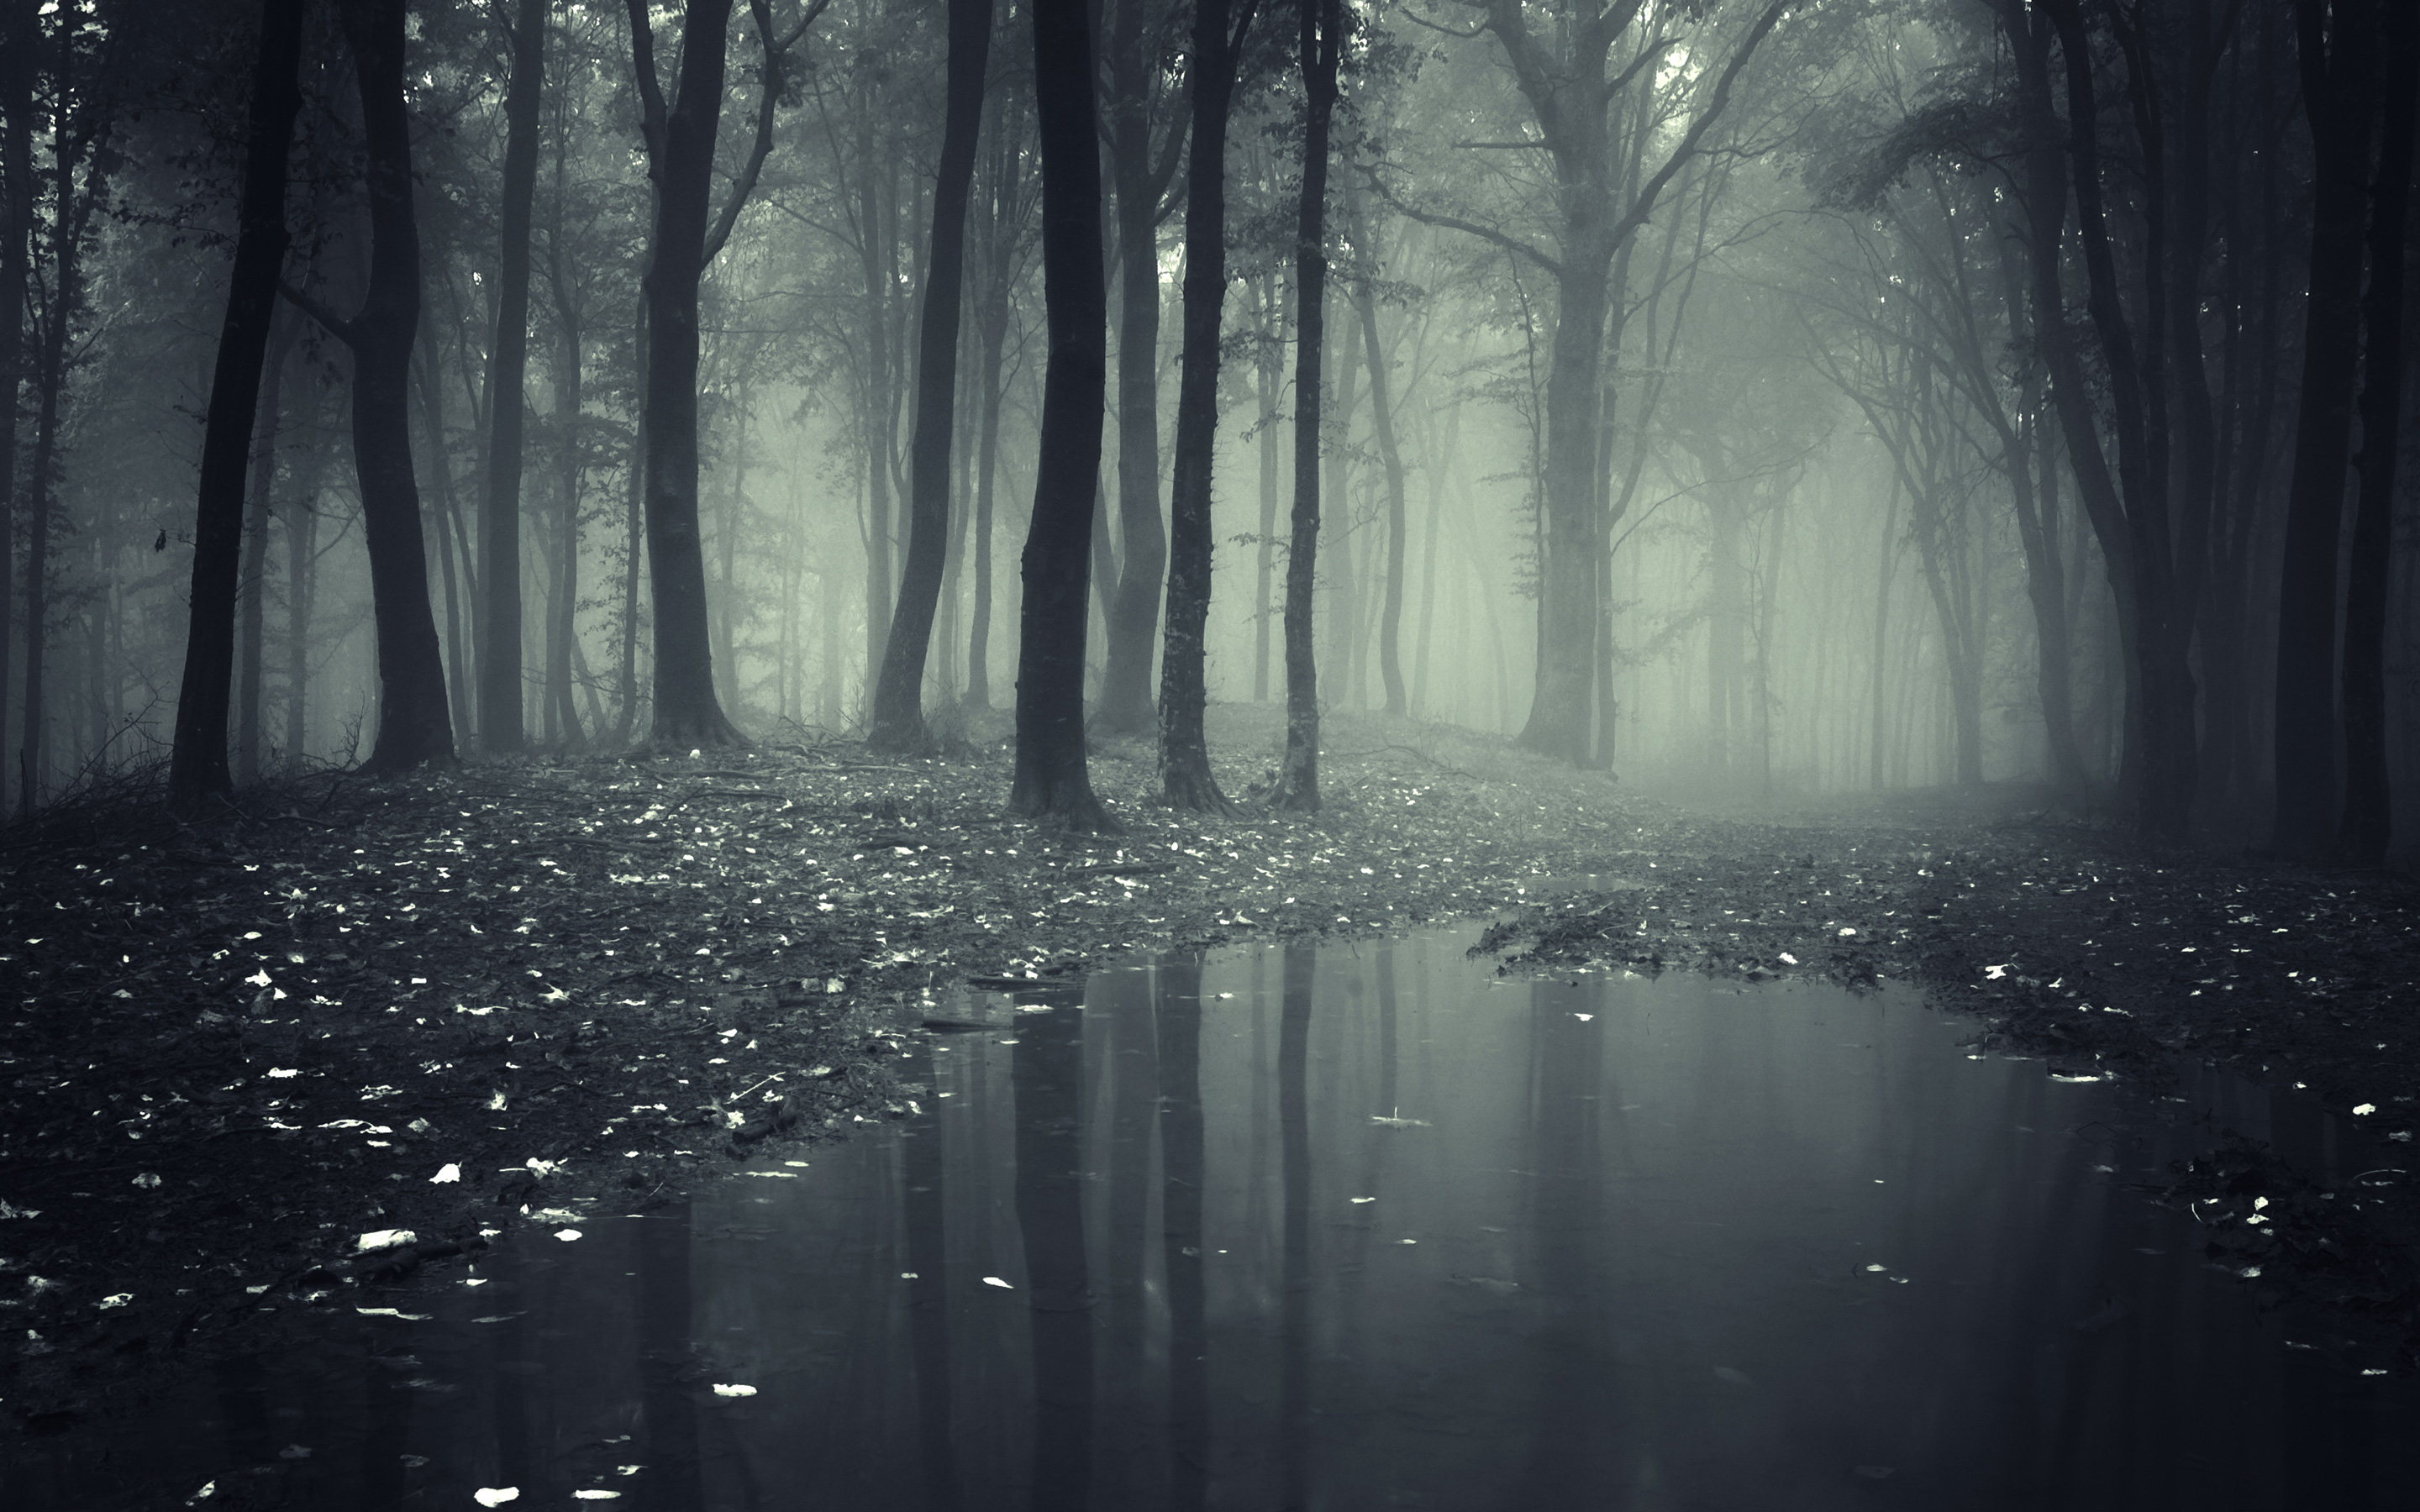 Dark Forest Wallpapers Widescreen Images amp Pictures   Becuo 2880x1800